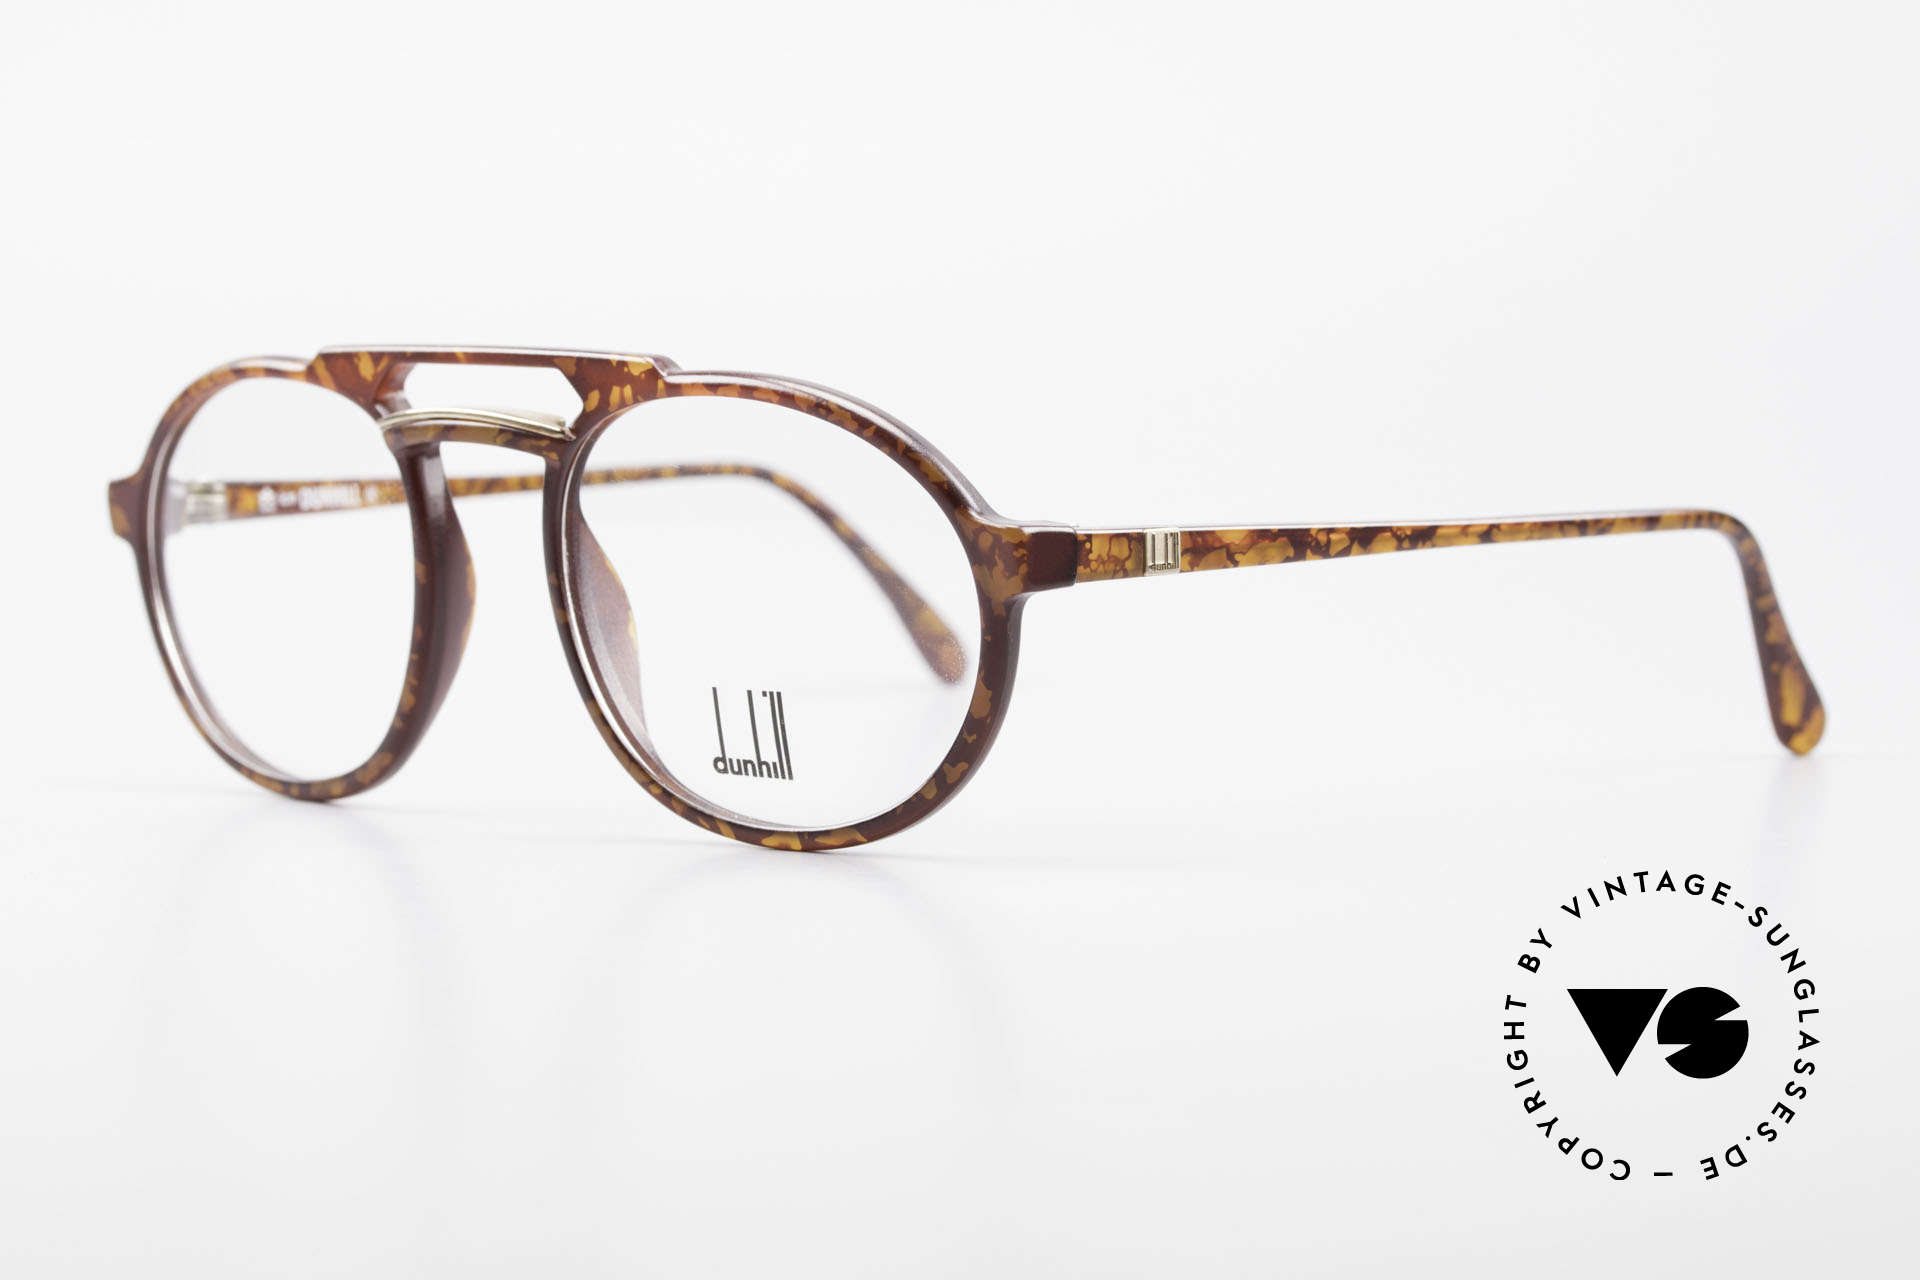 Dunhill 6114 Oval Round Vintage Frame 90s, the durable OPTYL material does not seem to age!, Made for Men